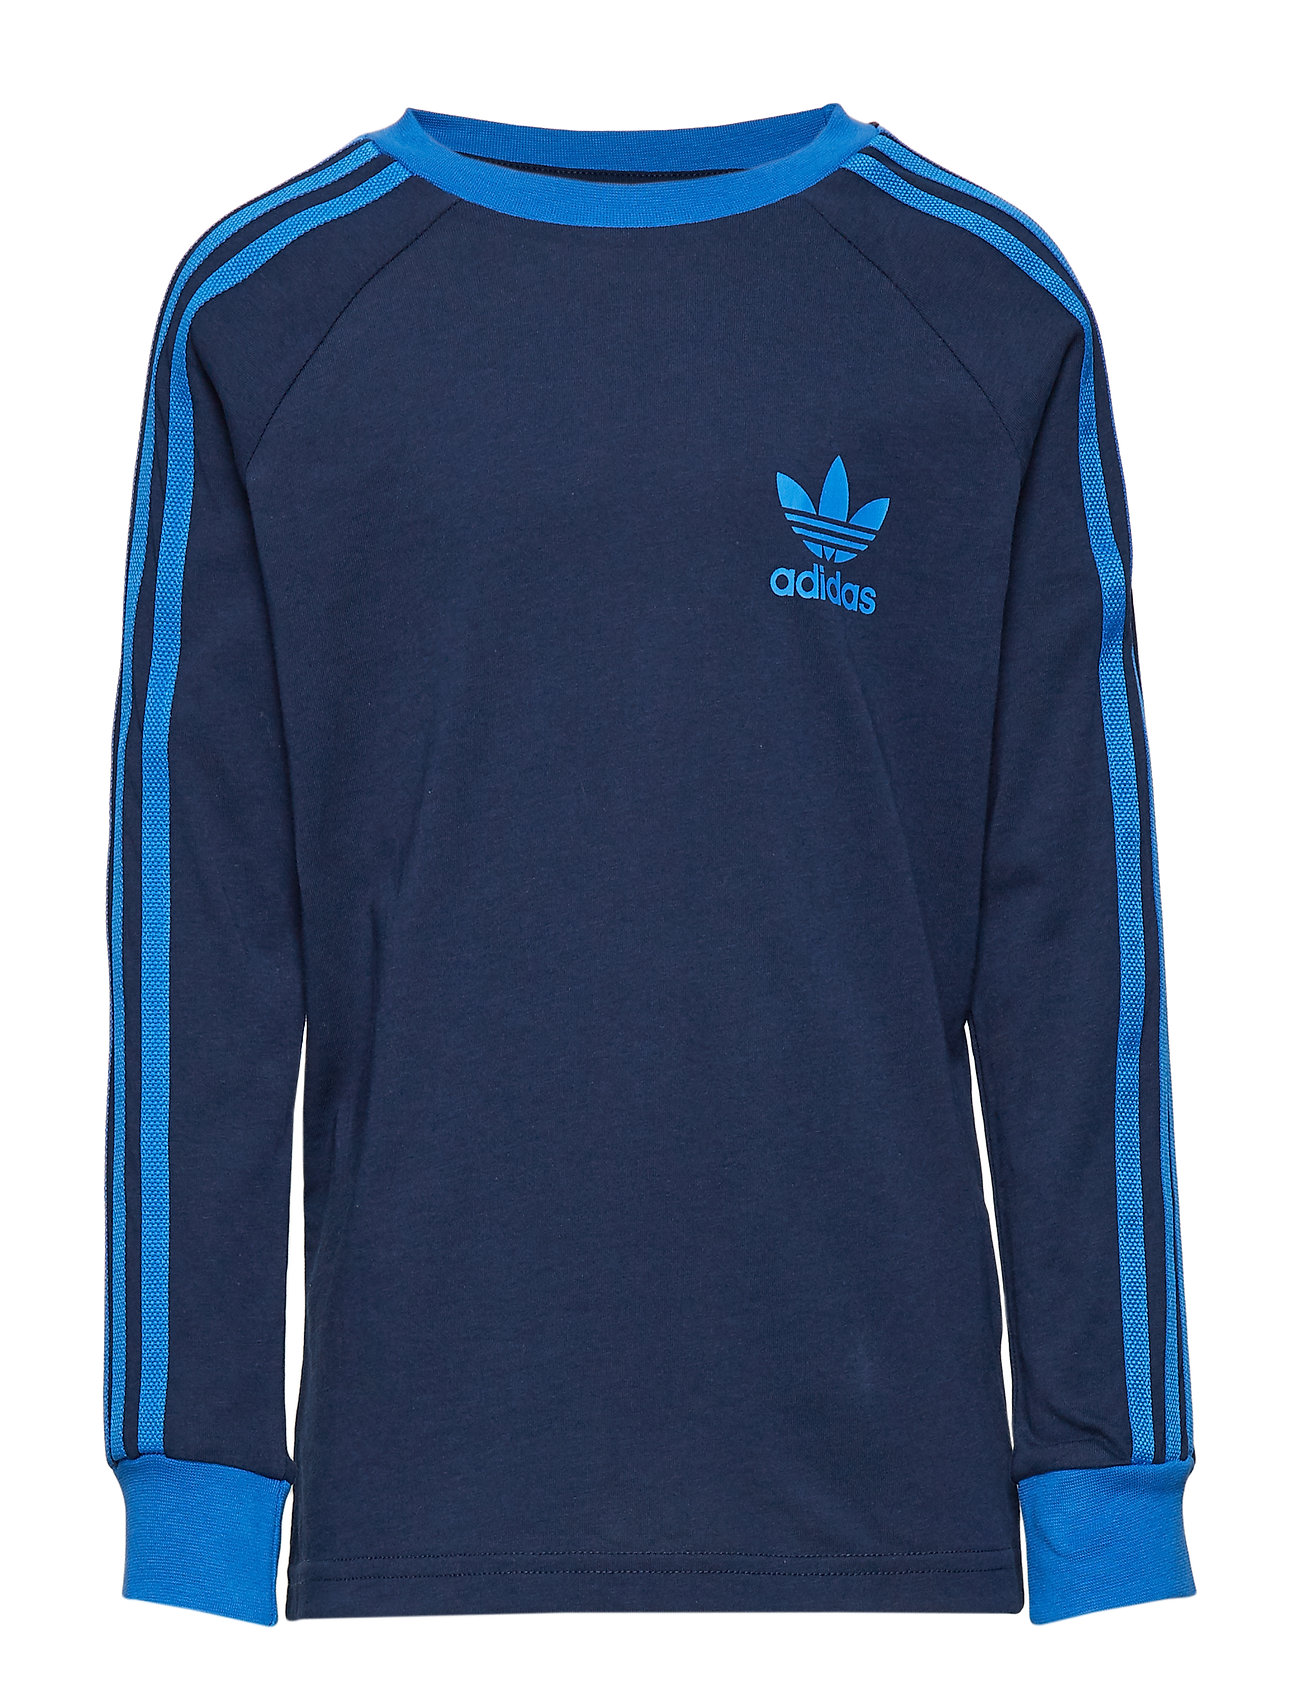 adidas Originals 3STRIPES LS - CONAVY/BLUBIR